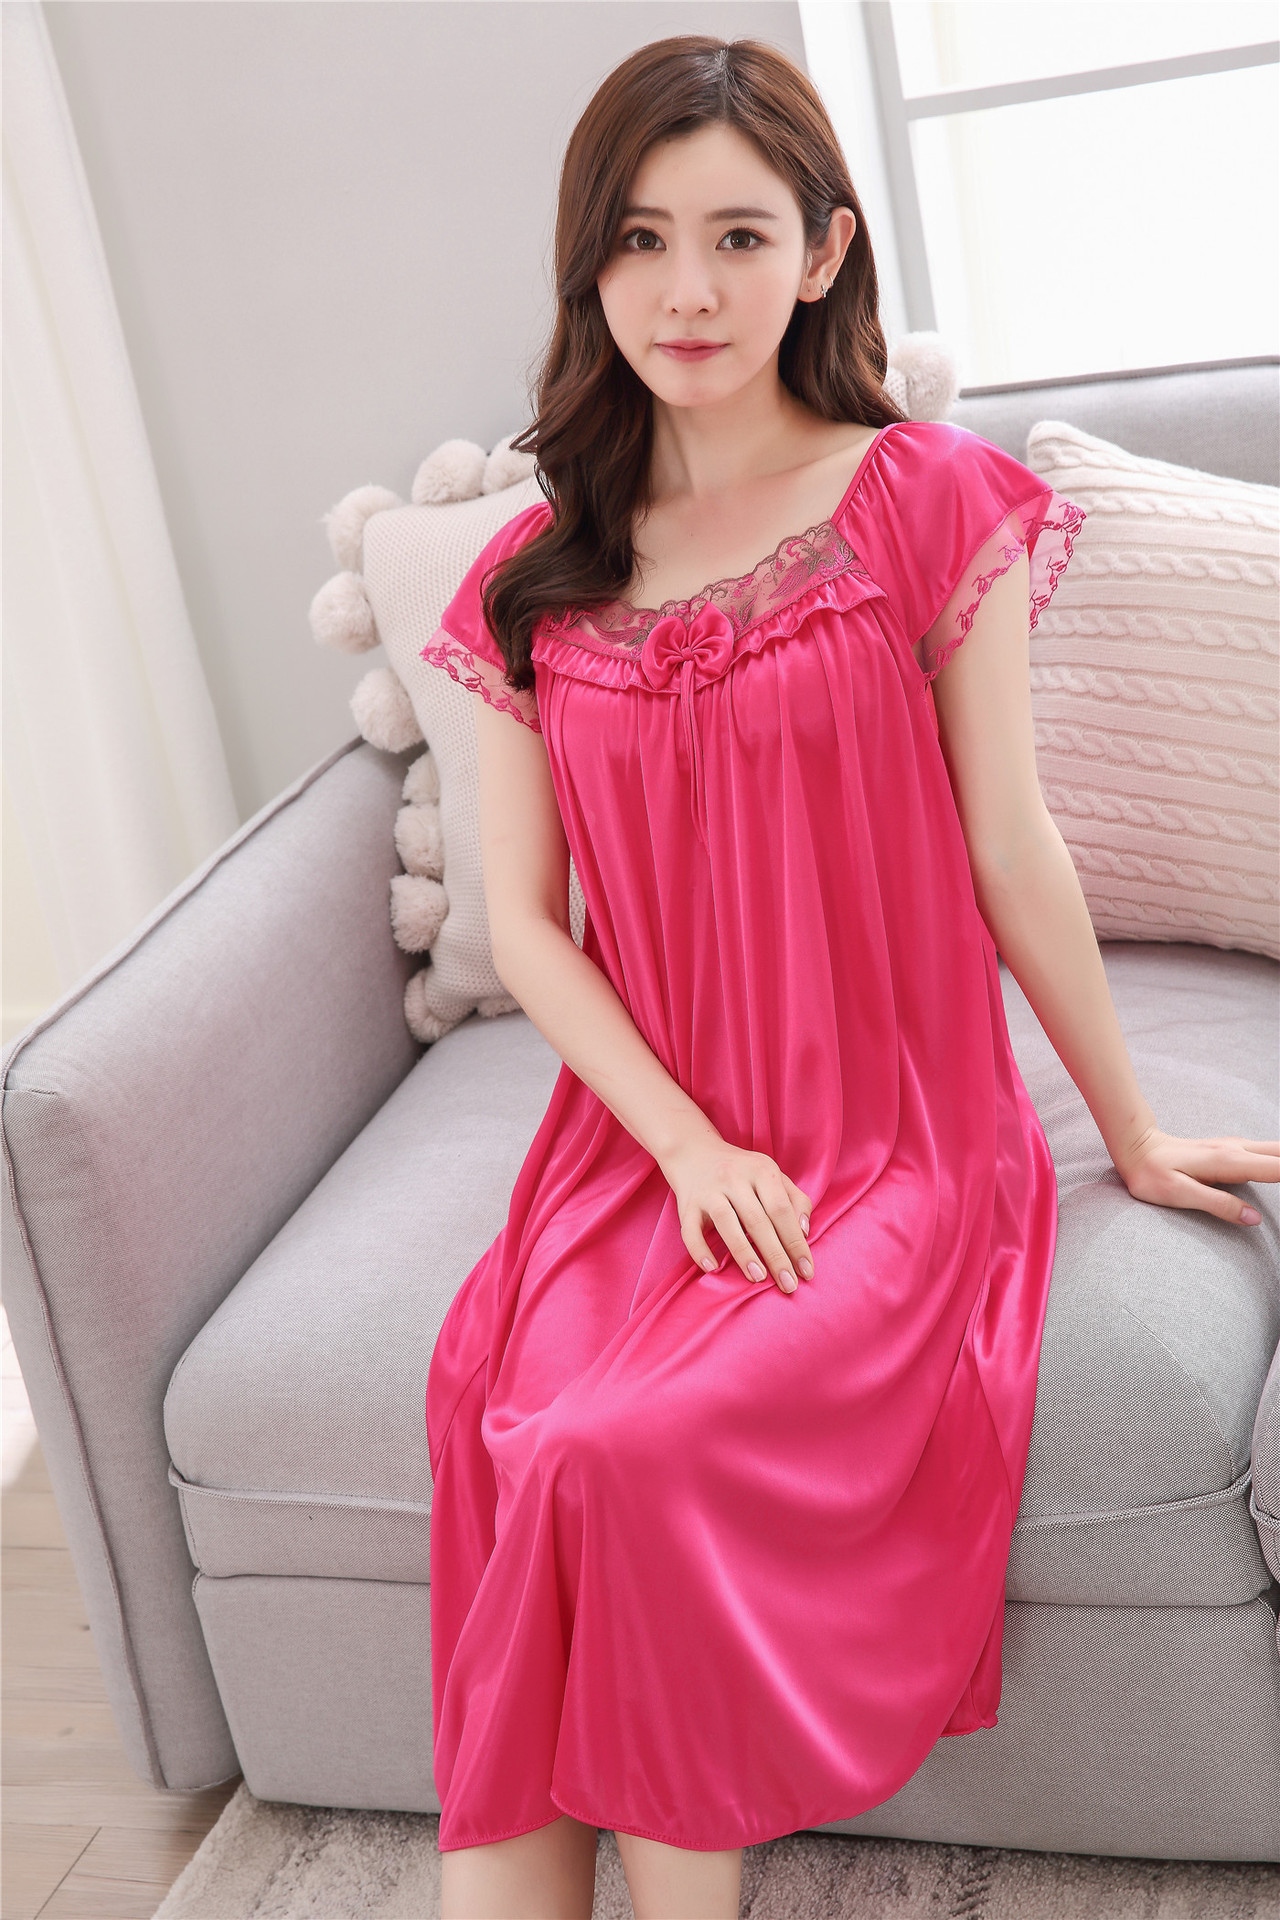 2018 summer Solid color sexy women ice silk nightgown lady short sleeve lace  sleepwear ladies size fat mm loose long nightdress 31266d702